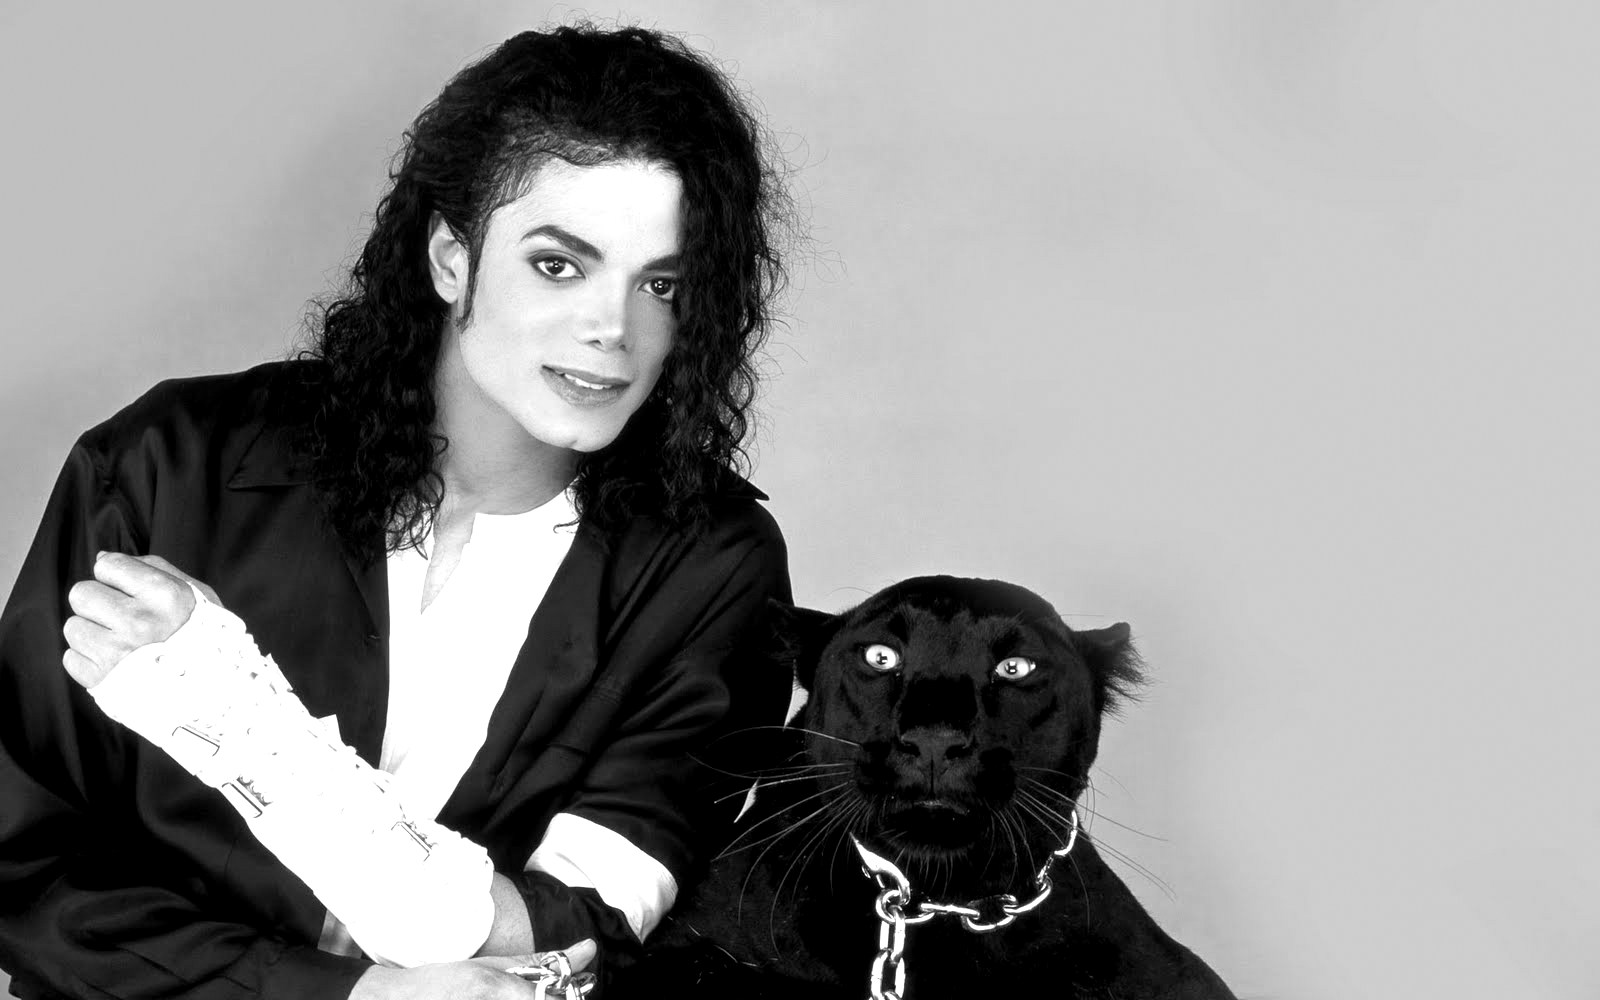 http://1.bp.blogspot.com/-Uo_LFokMB4k/UFhWMujlnHI/AAAAAAAADTU/5DgQ2SB0Eog/s1600/michael-jackson-black0and-white-photo-with-dog.jpg